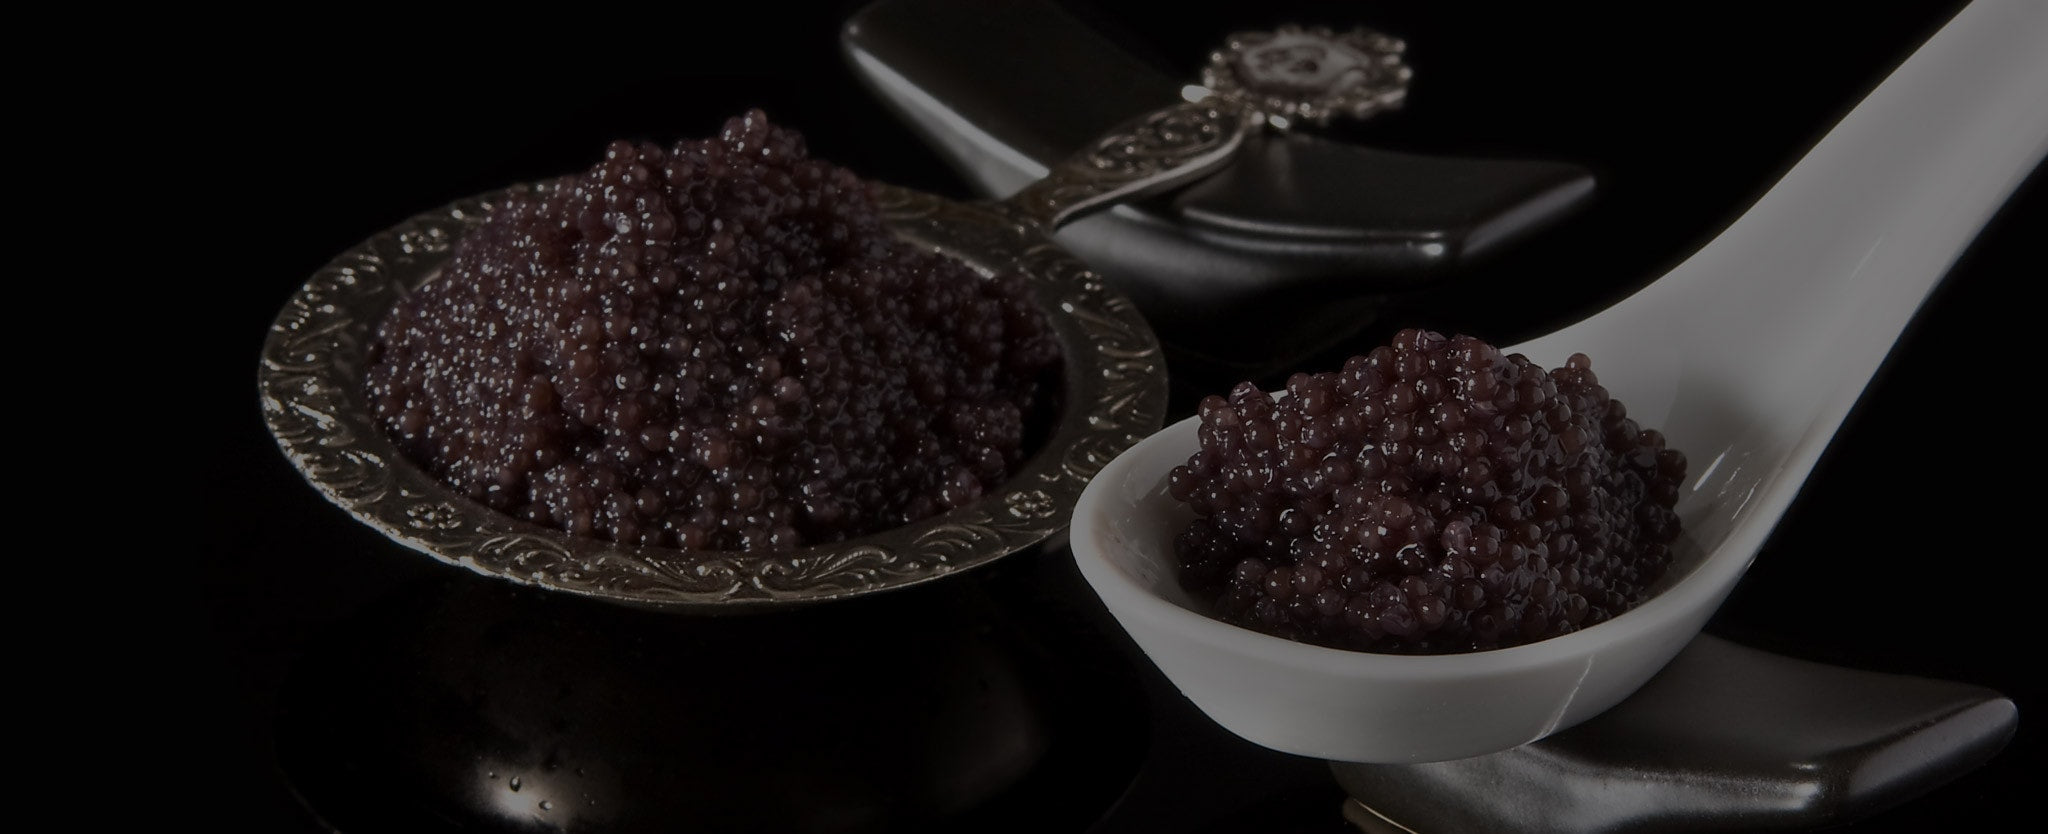 Caviar of impeccable quality from around the world